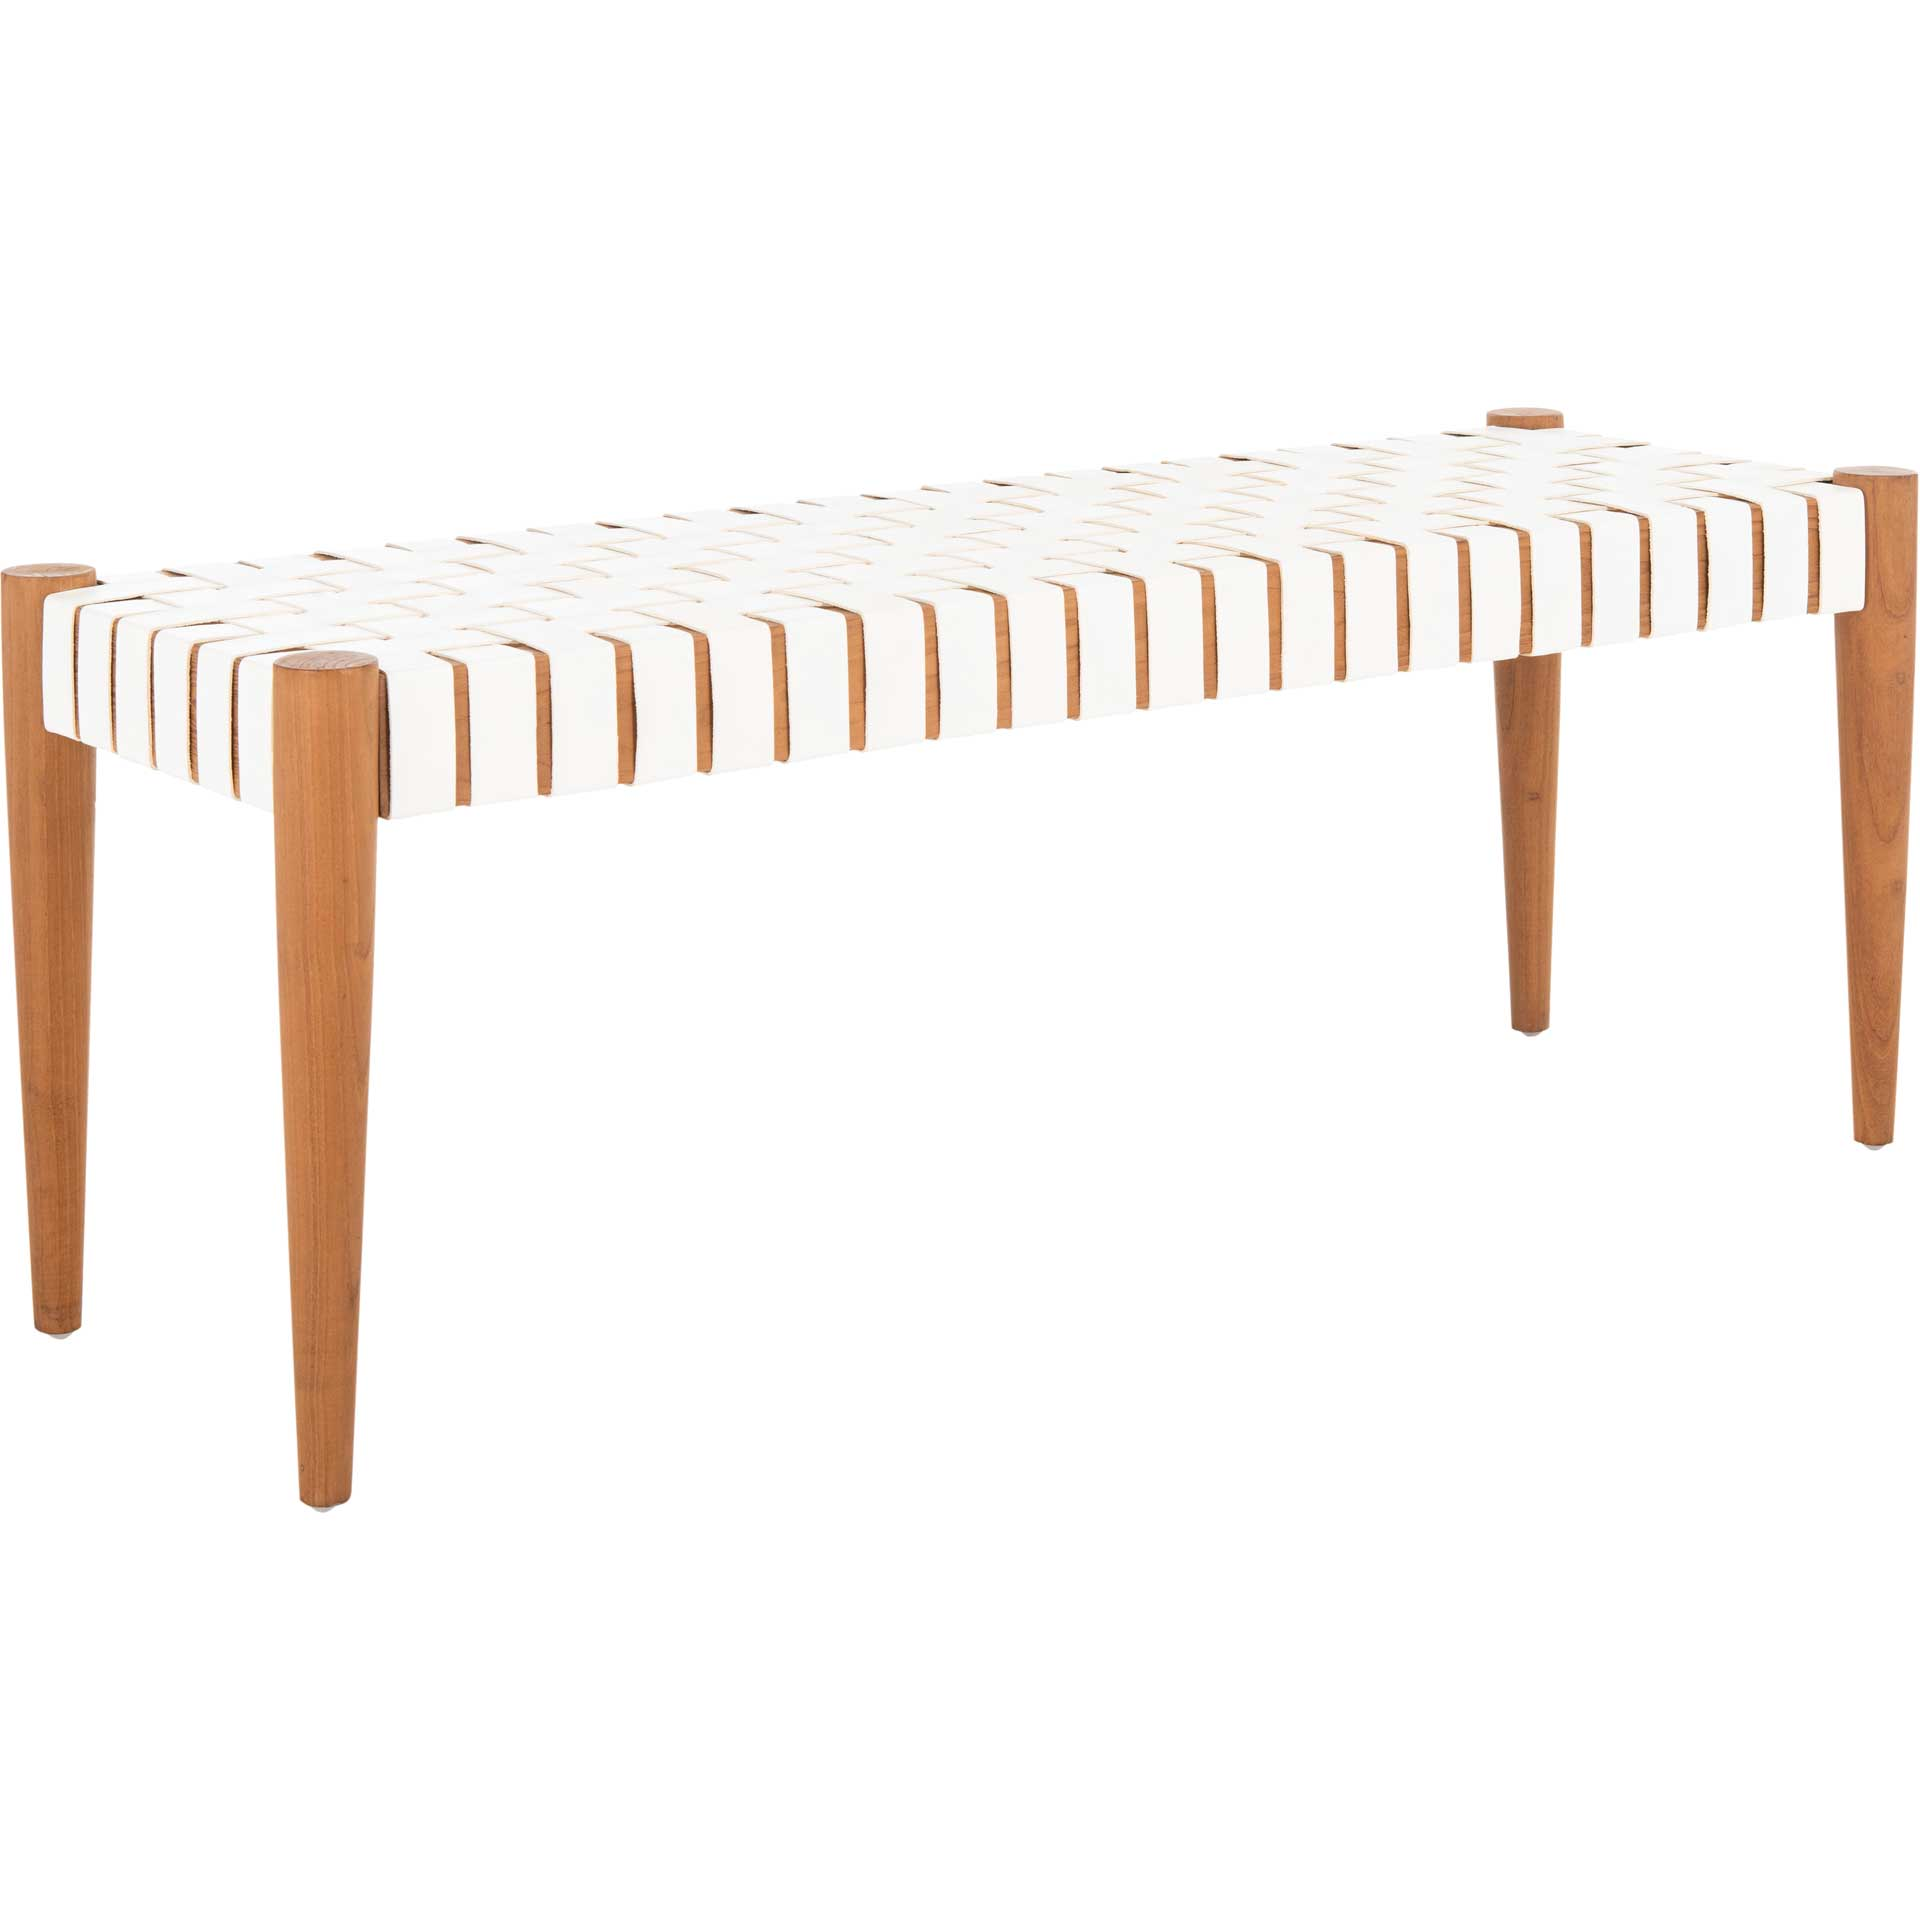 Amos Leather Weave Bench White/Oak